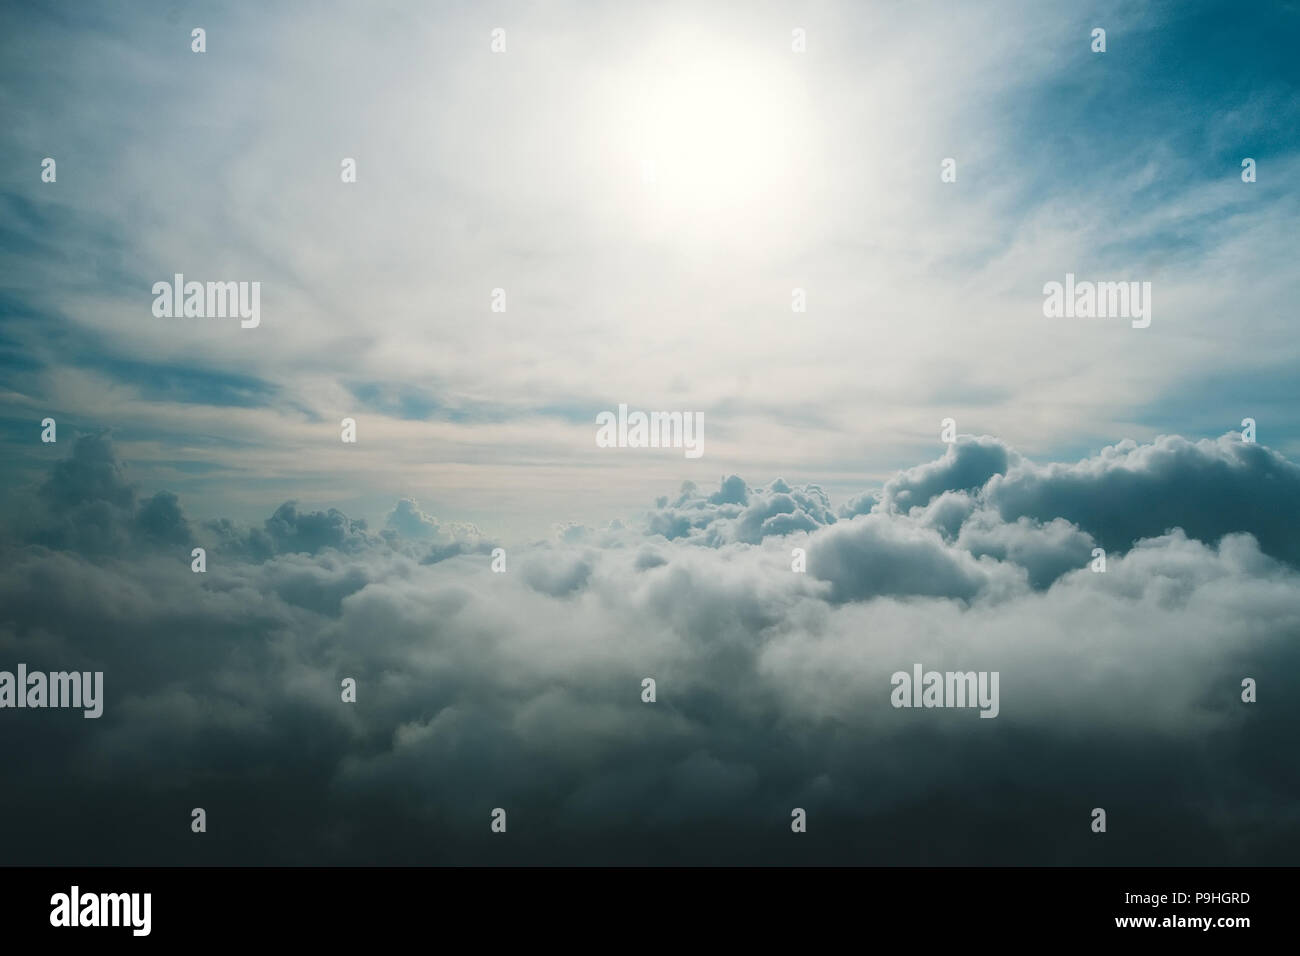 a view from high above the clouds. View of the clouds from the window of the aircraft. Non-flying weather. The sun shines through the dark blue and gr - Stock Image